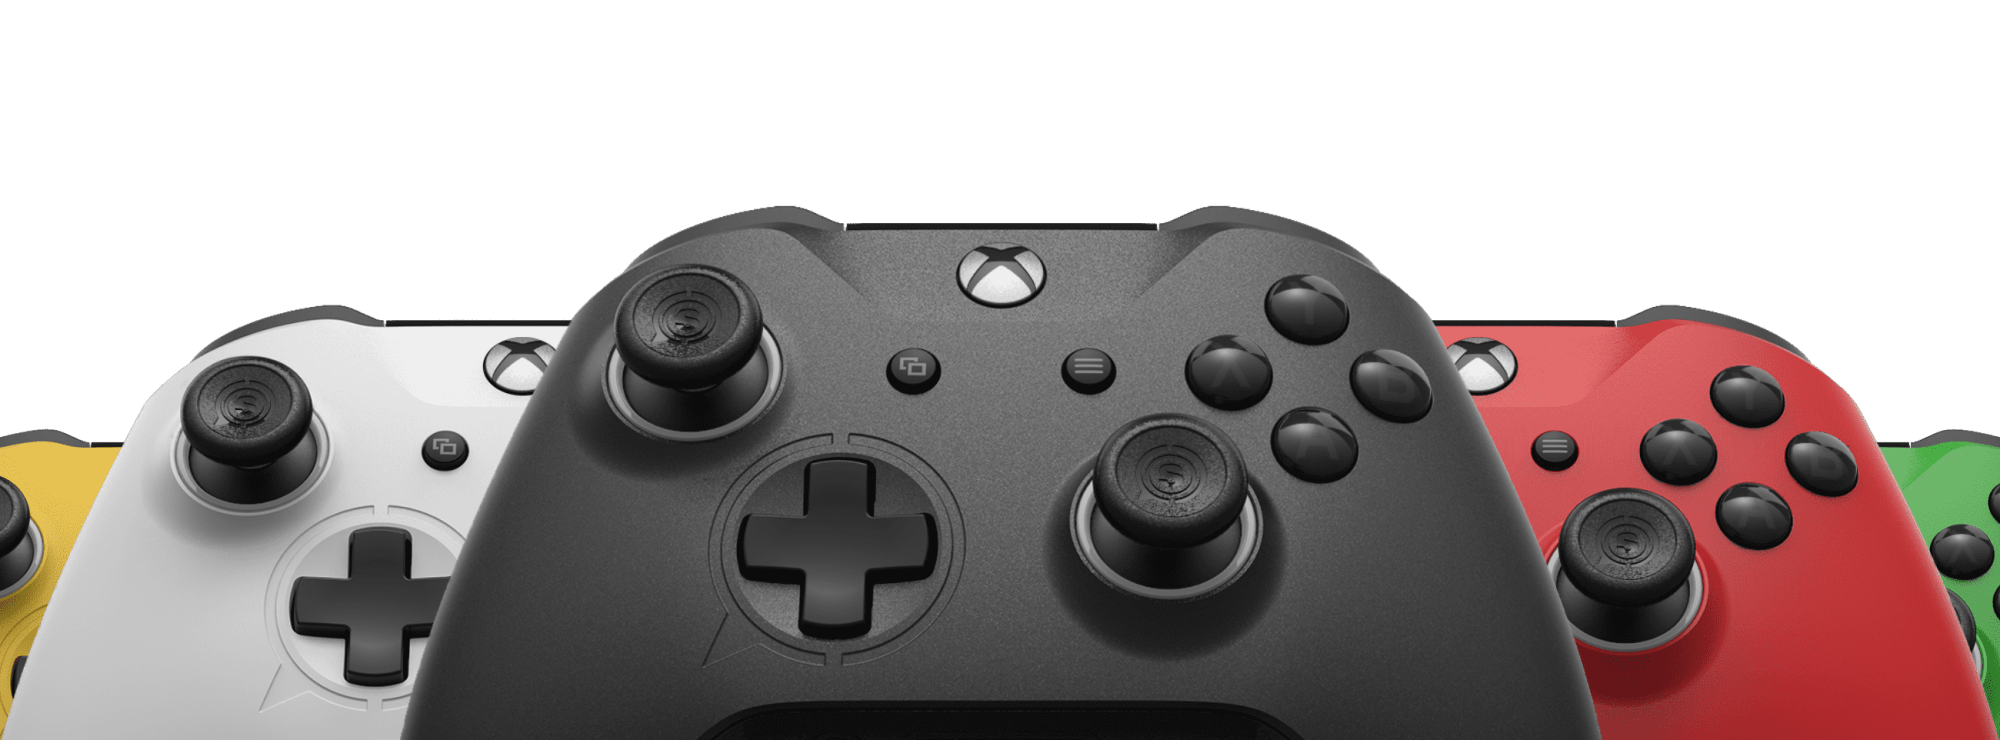 hight resolution of scuf prestige controller in various colors